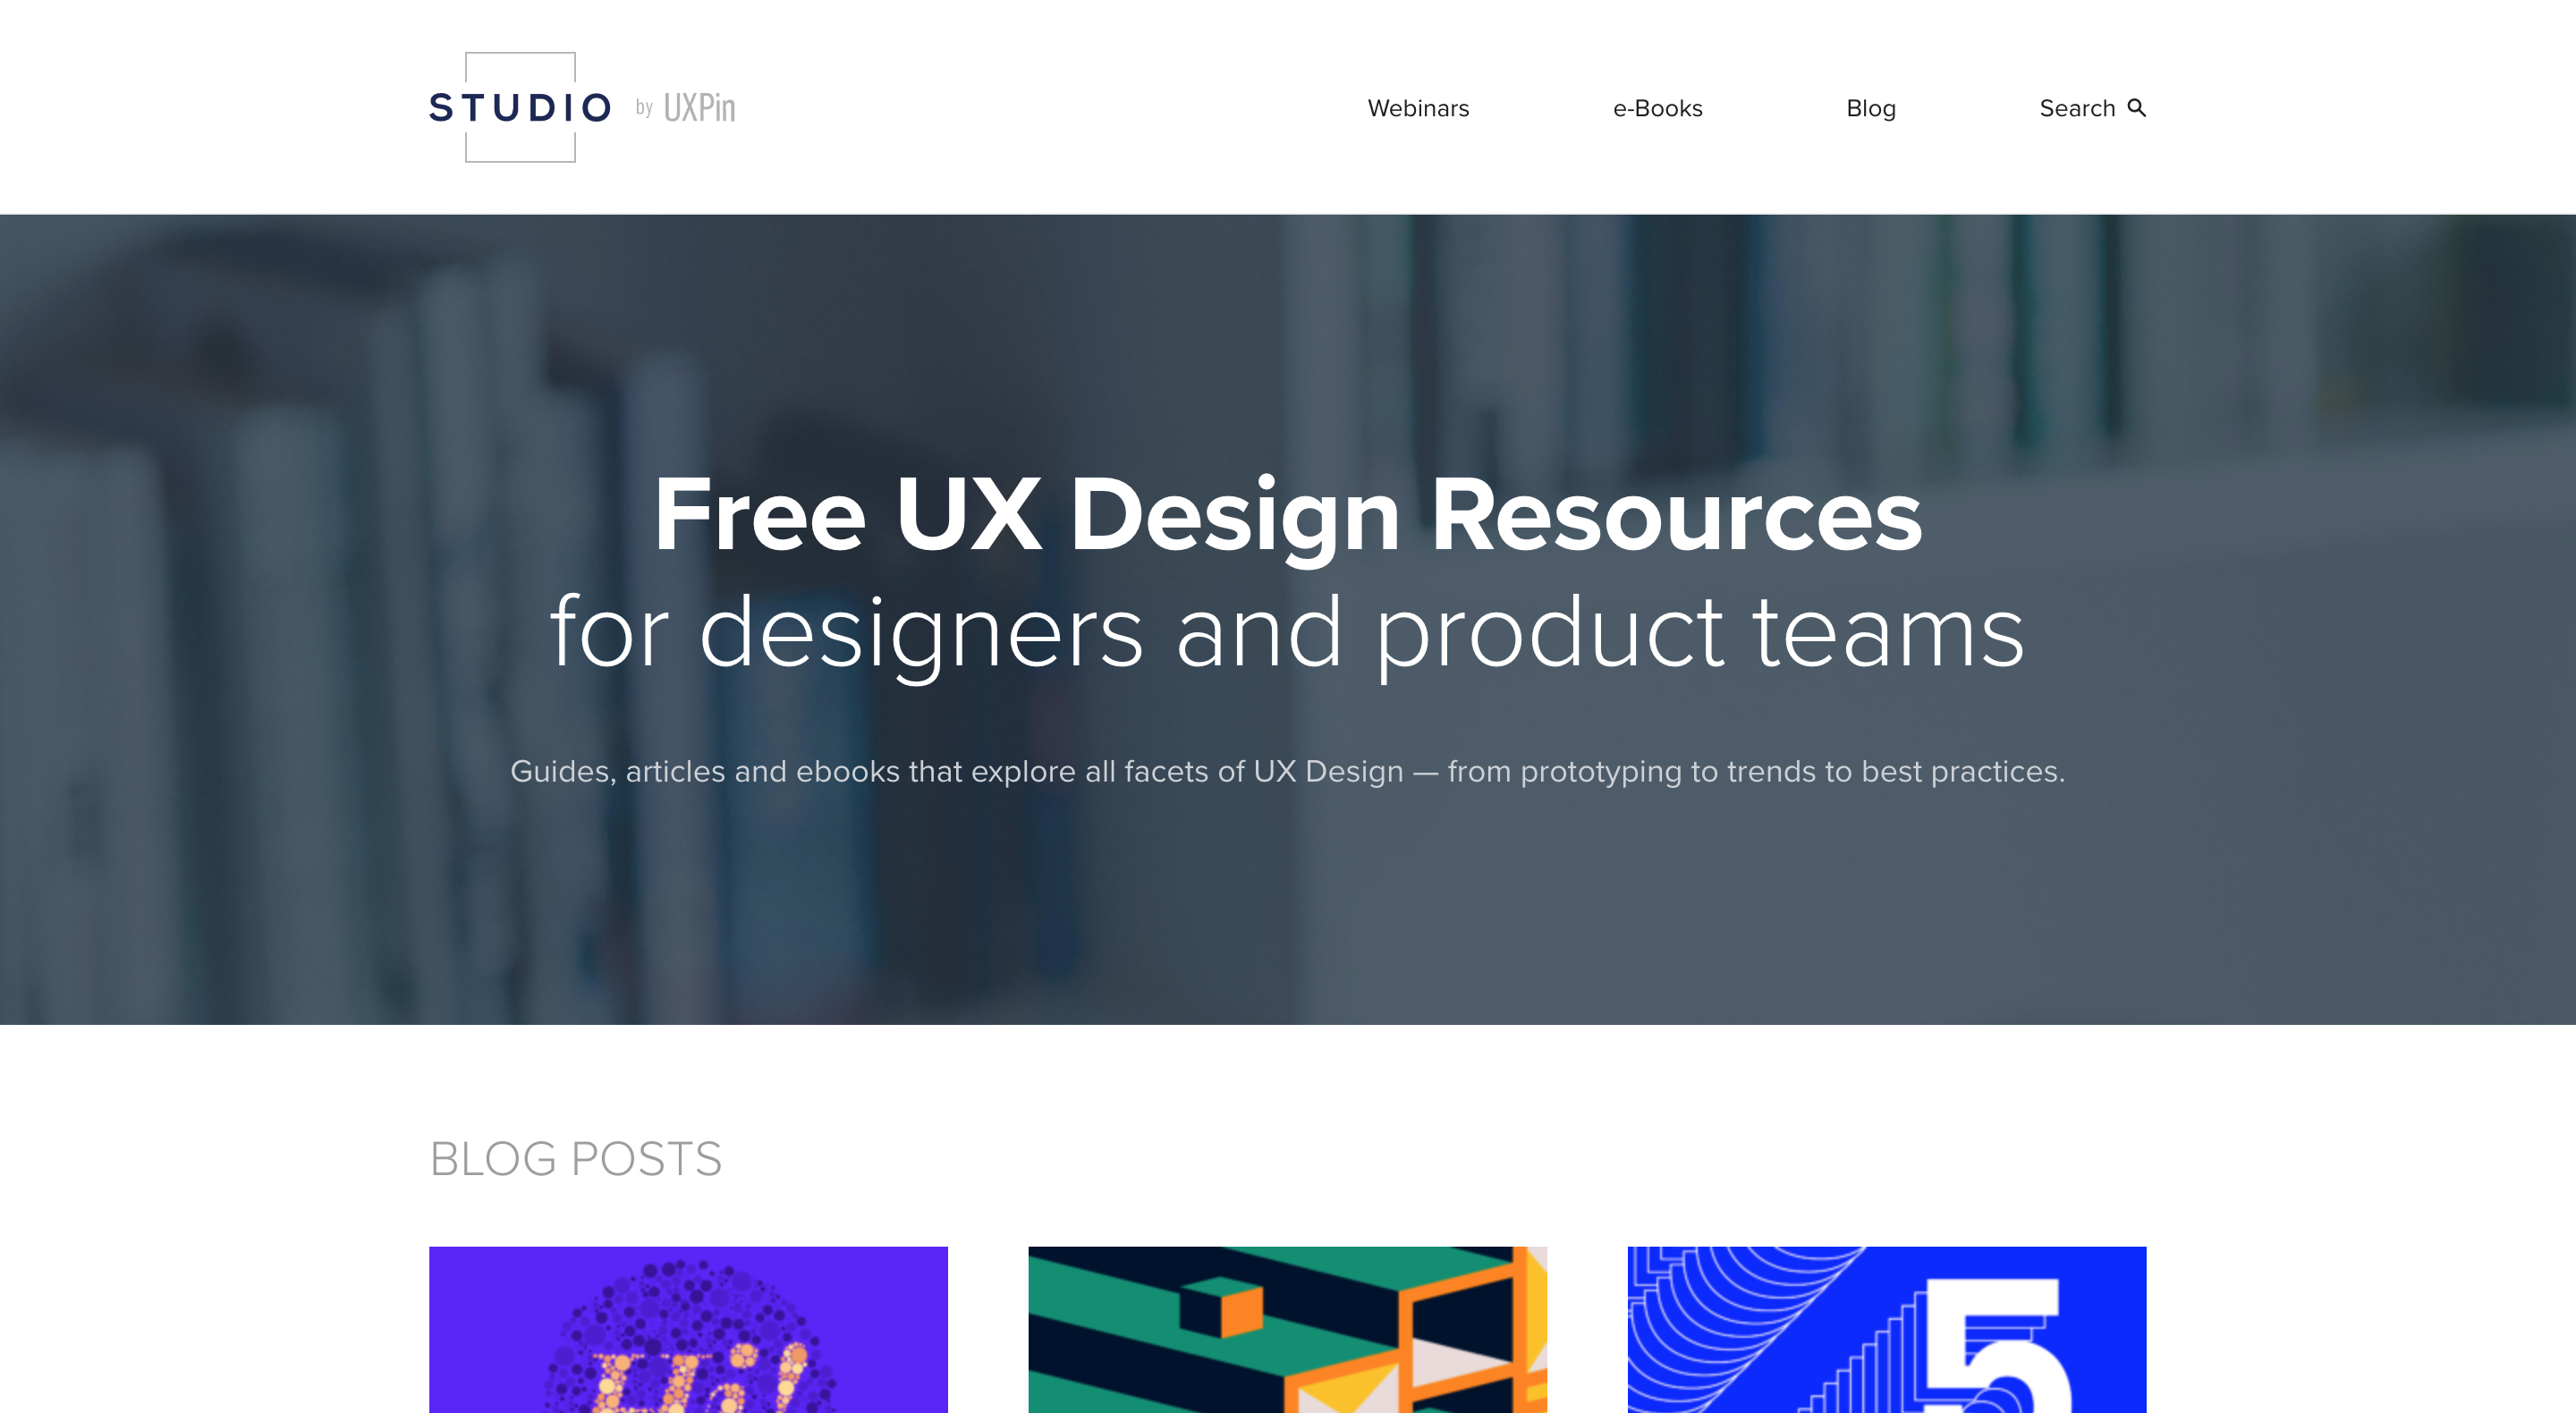 Stay on top of 2019 design trends by following these UX & UI